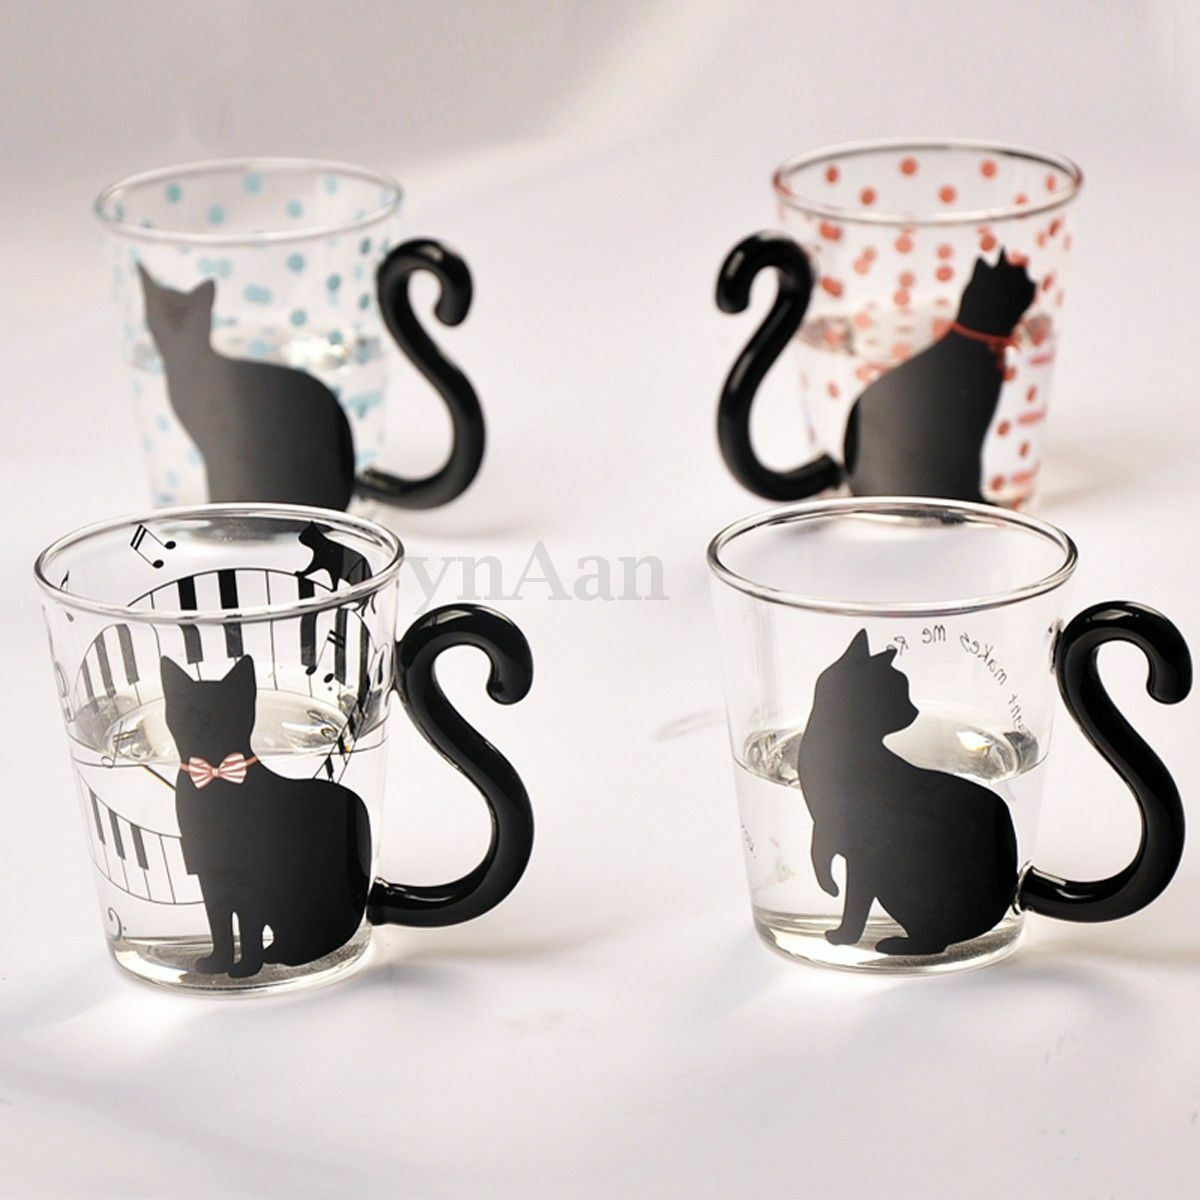 300ml tasse th caf lait en verre mug r sistant chaleur. Black Bedroom Furniture Sets. Home Design Ideas